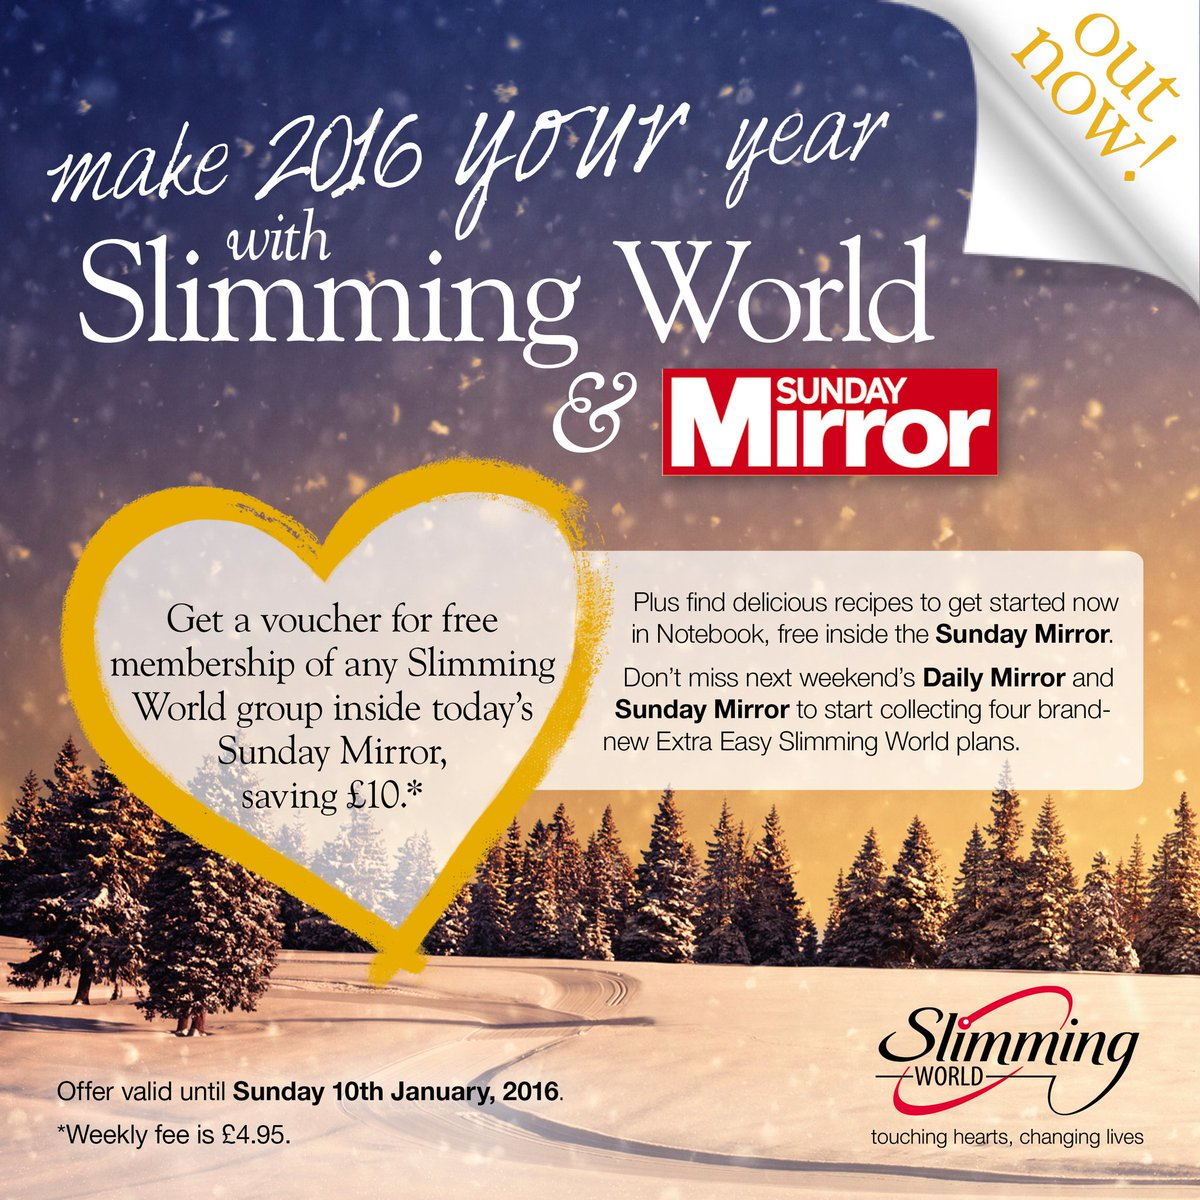 Slimming World On Twitter Free Slimmingworld Membership In Today 39 S Sunday Mirror Plus